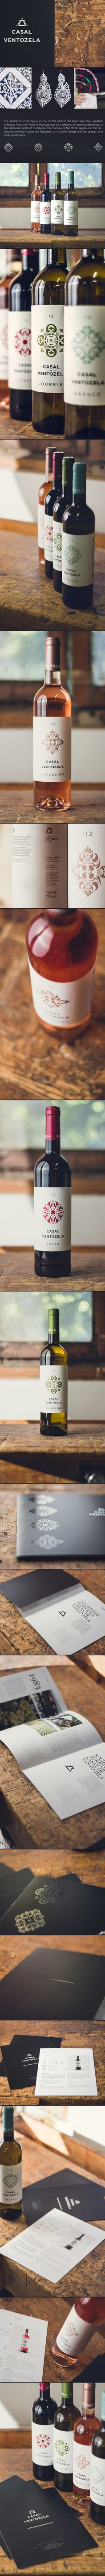 packaging - branding - print / casal de ventozela by gen design studio, via Behance